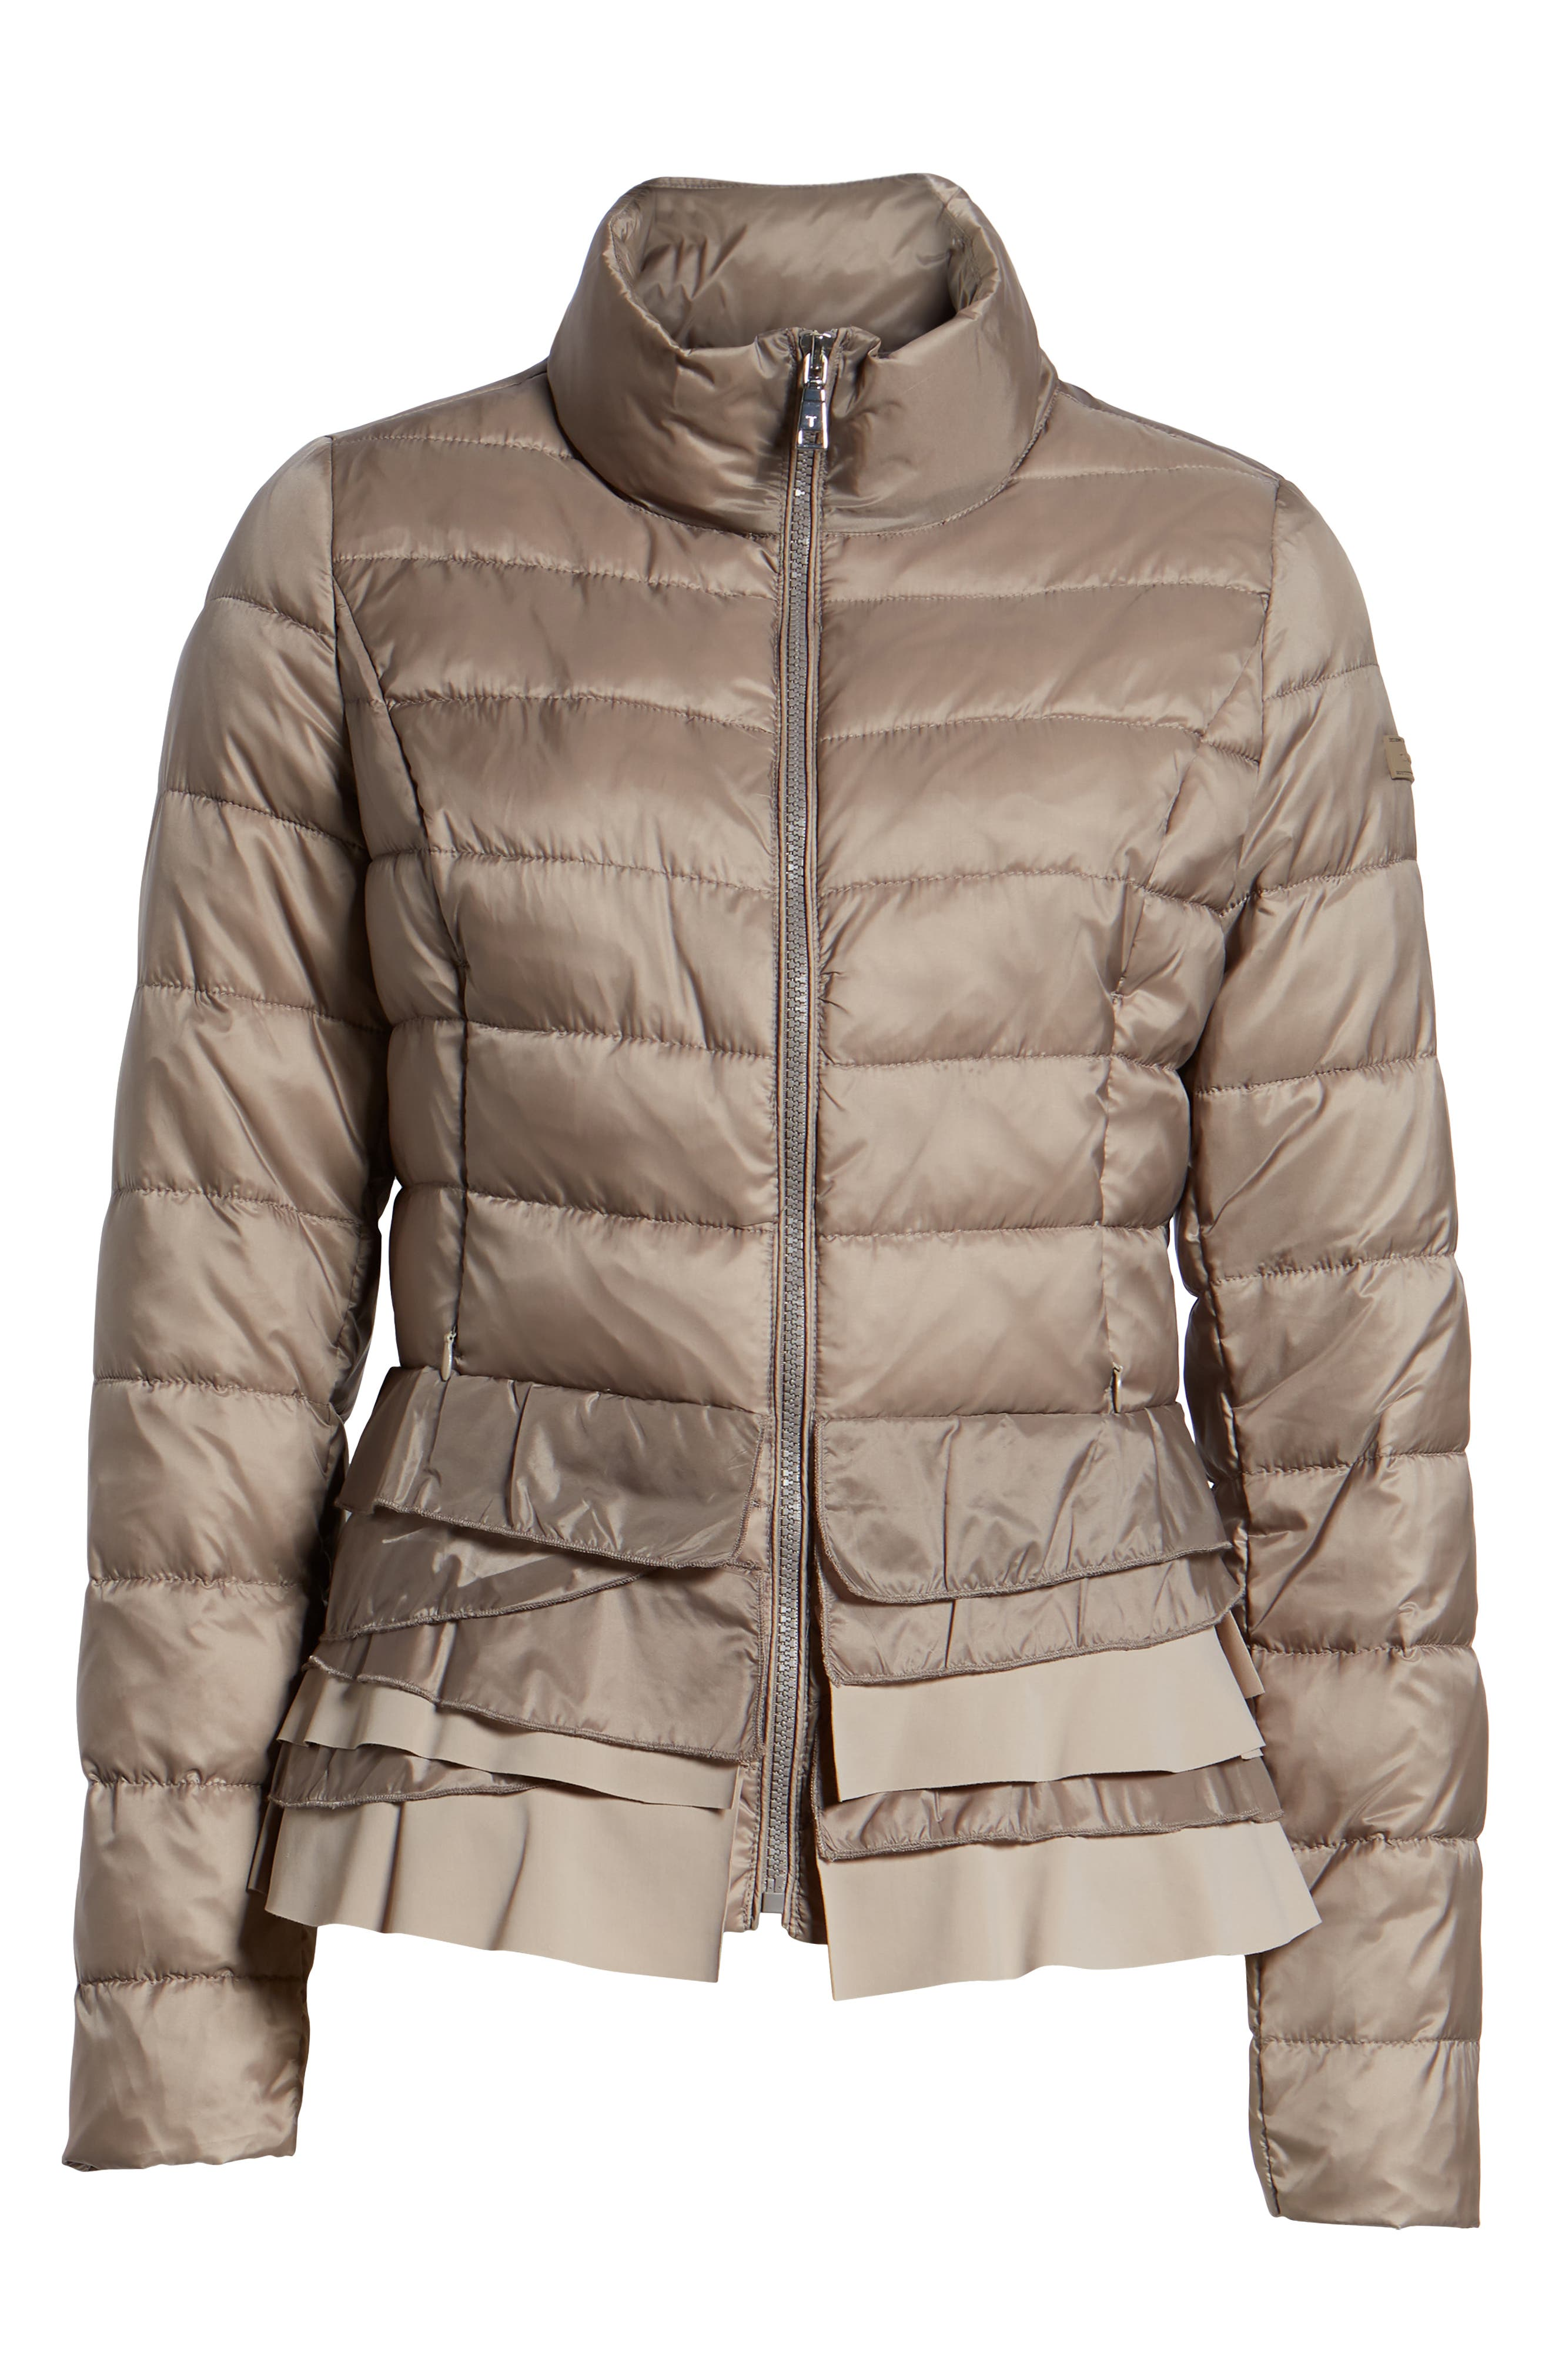 TAHARI, Zoey Ruffle Hem Puffer Jacket, Alternate thumbnail 6, color, TRUFFLE